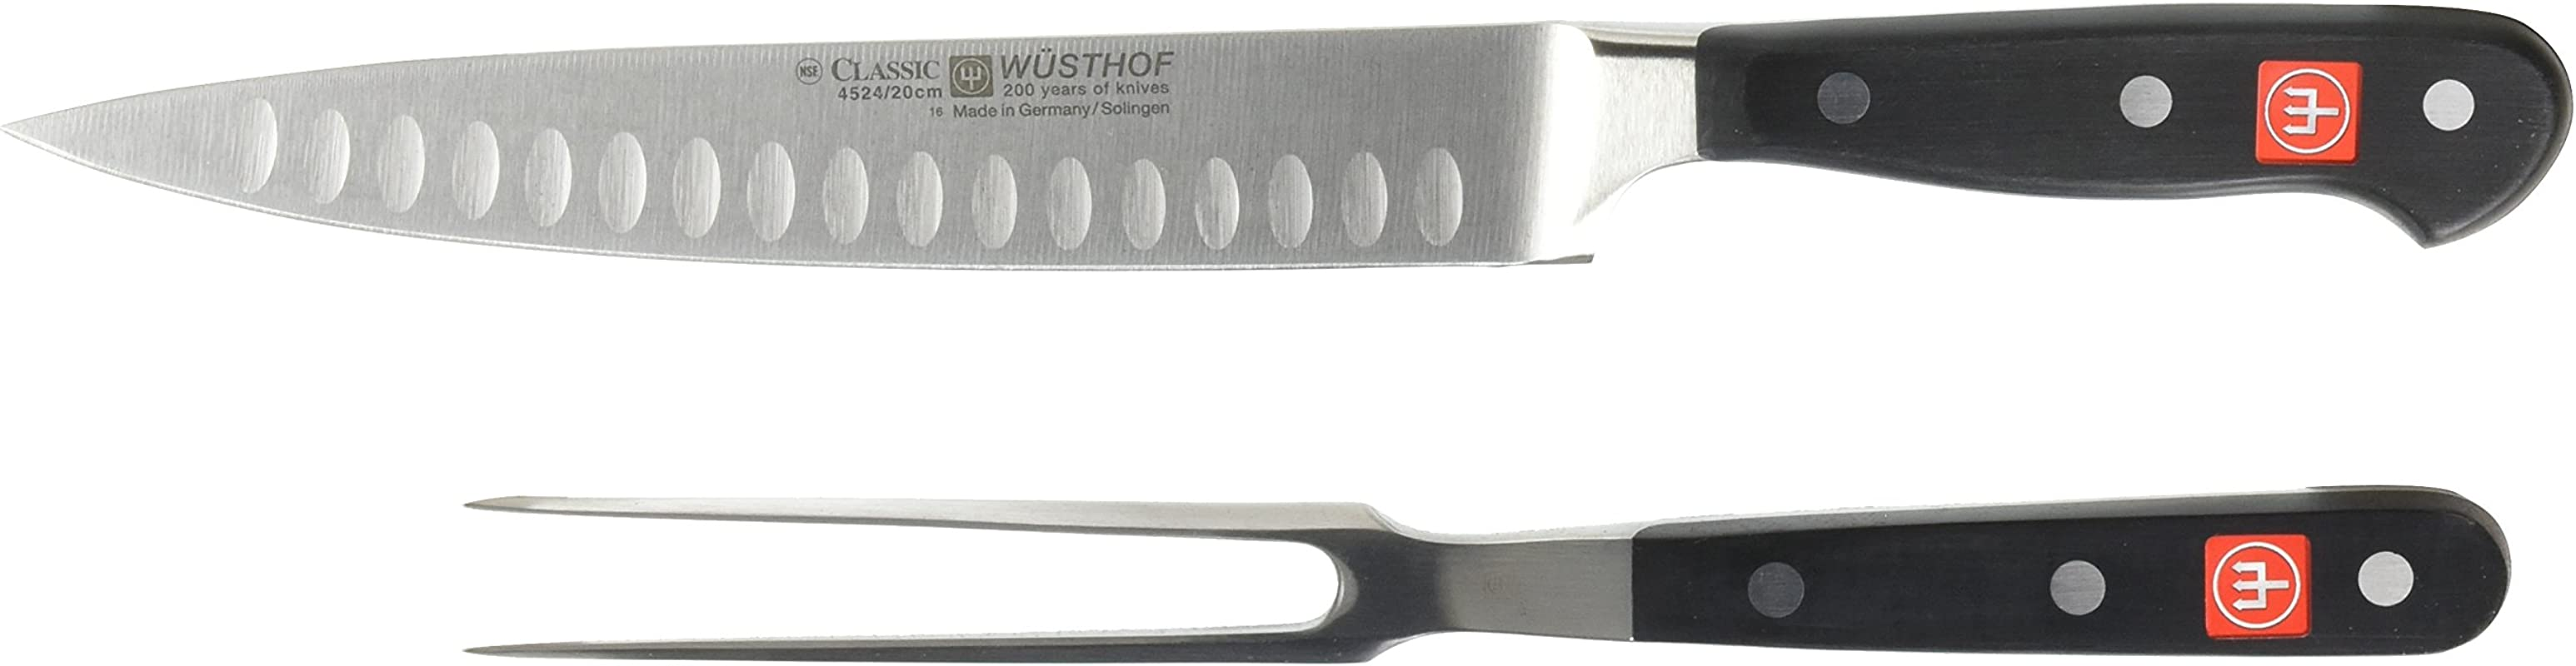 Wusthof 9740 1 CLASSIC Two Piece Carving Set 2 Black Stainless Steel